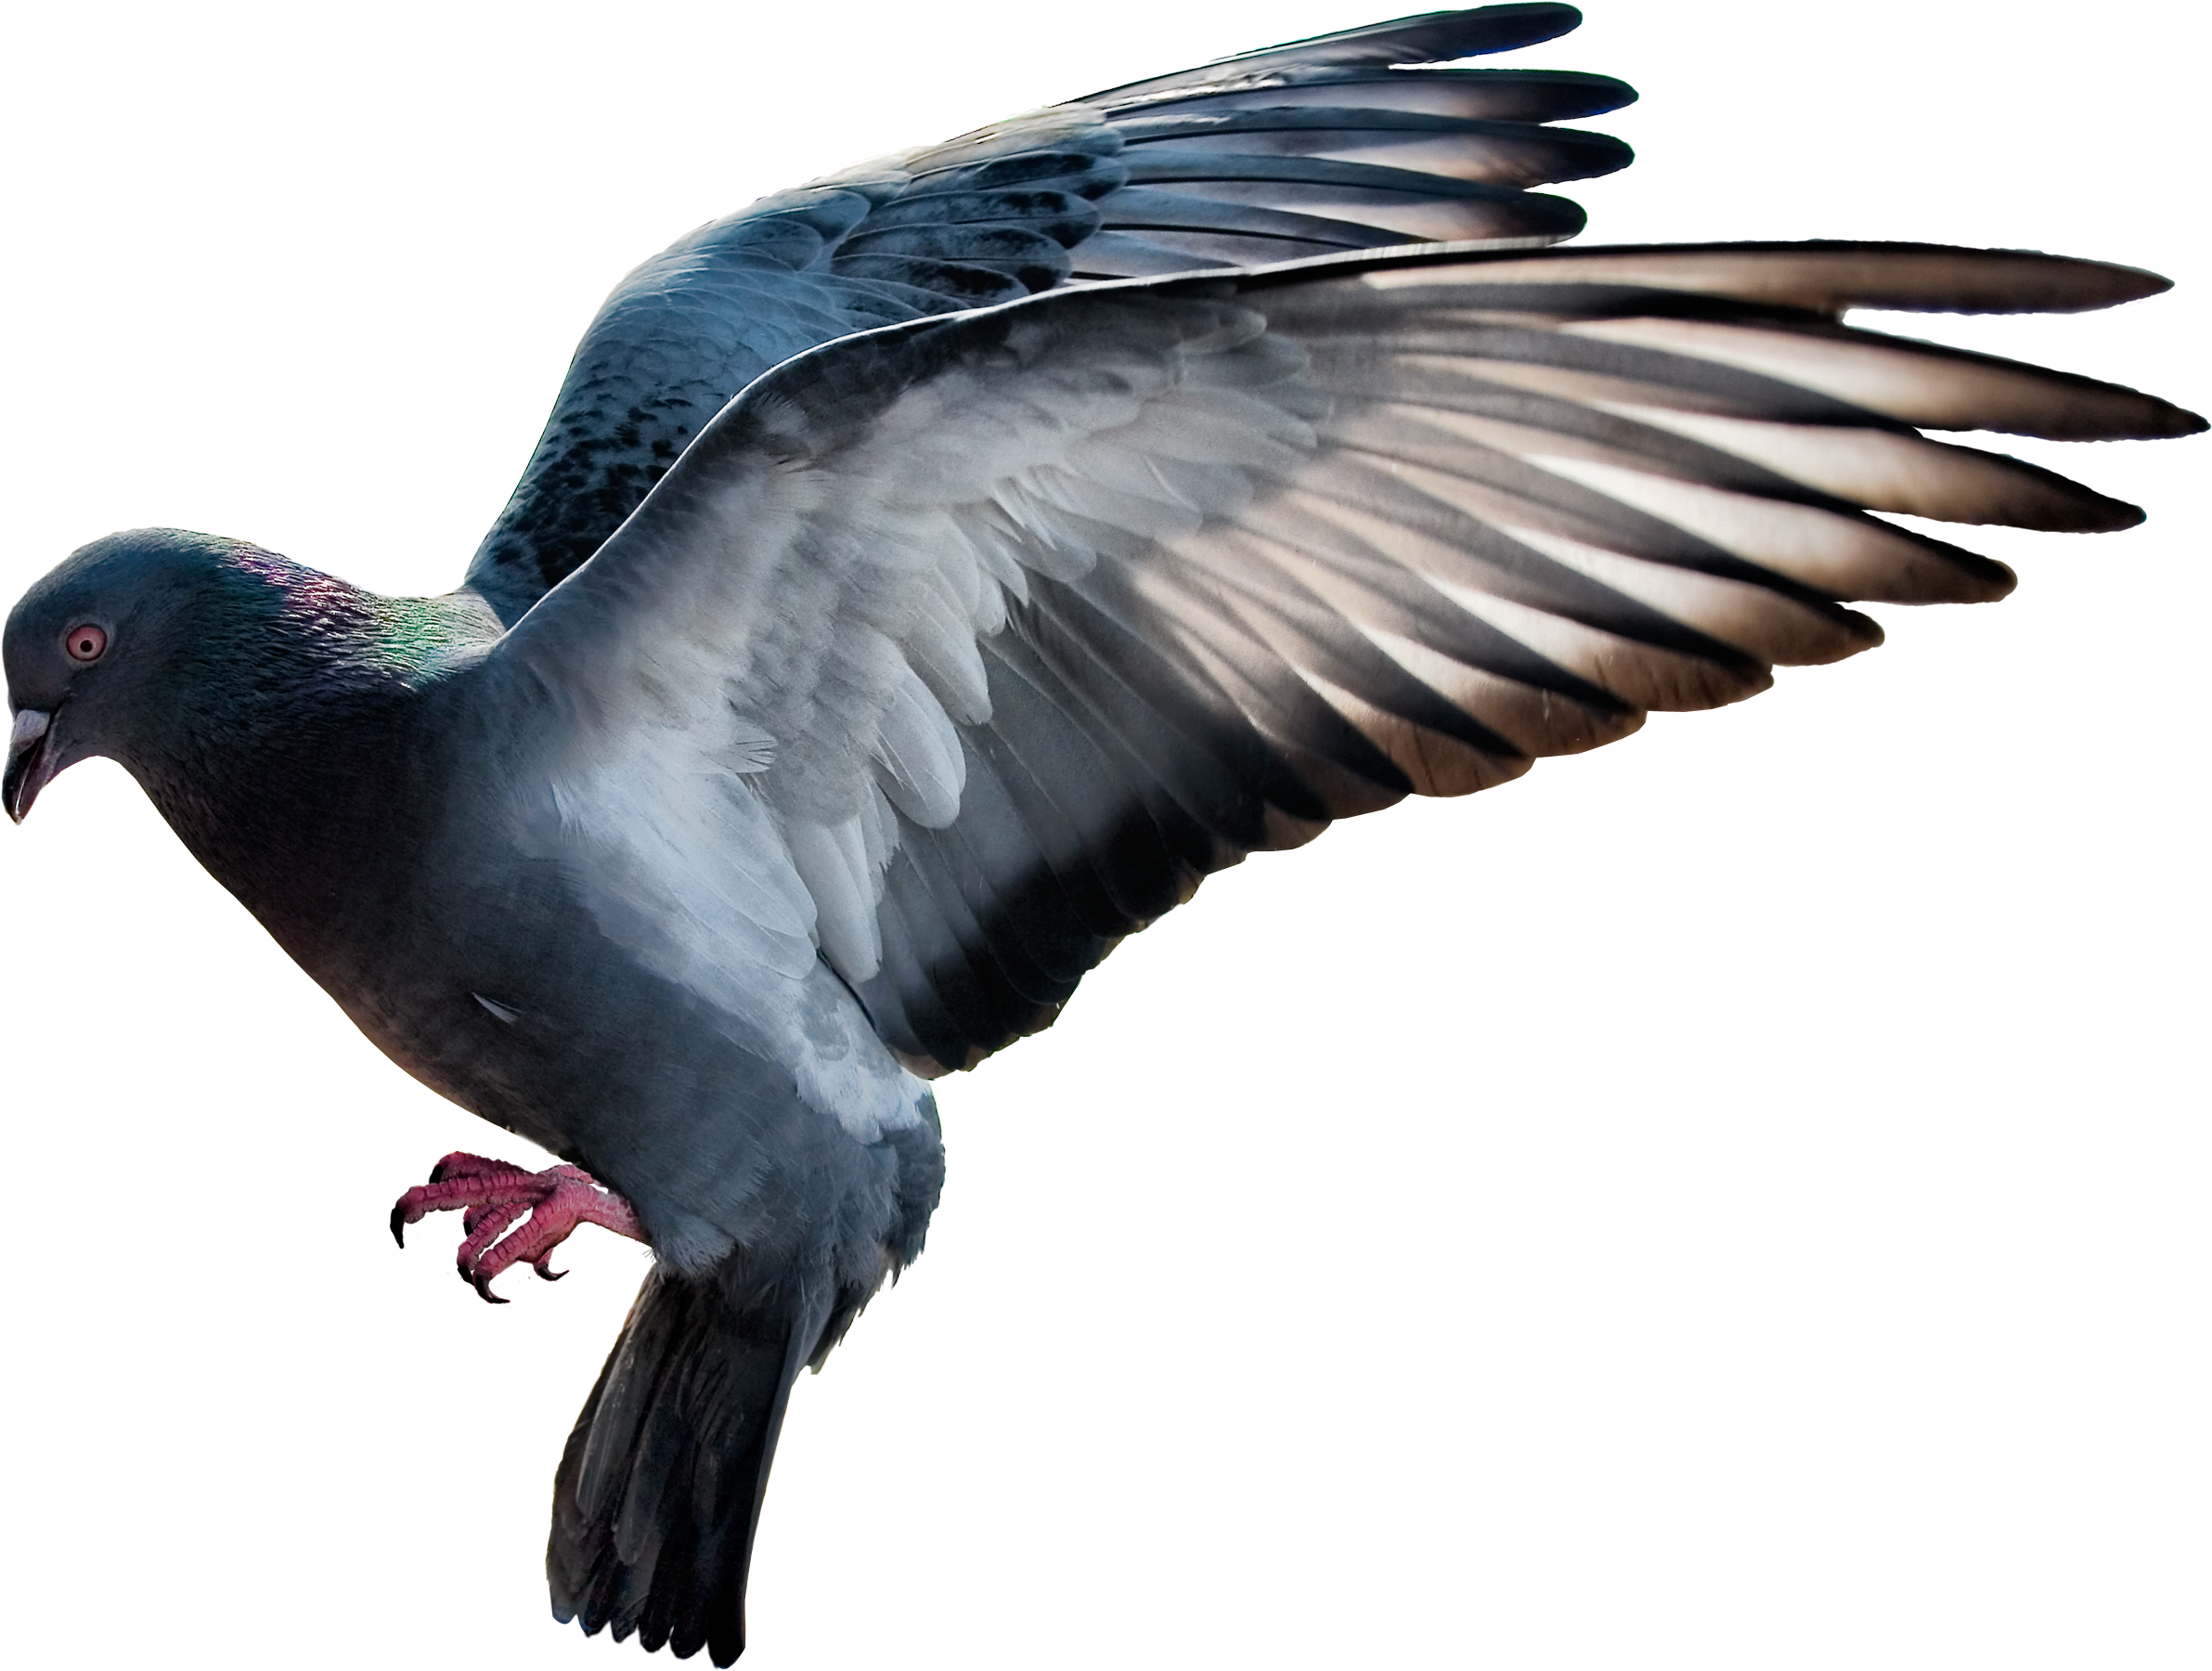 Turkey vulture clipart image library library pigeon PNG image   PNG Animals   Pinterest   Landscape architecture ... image library library